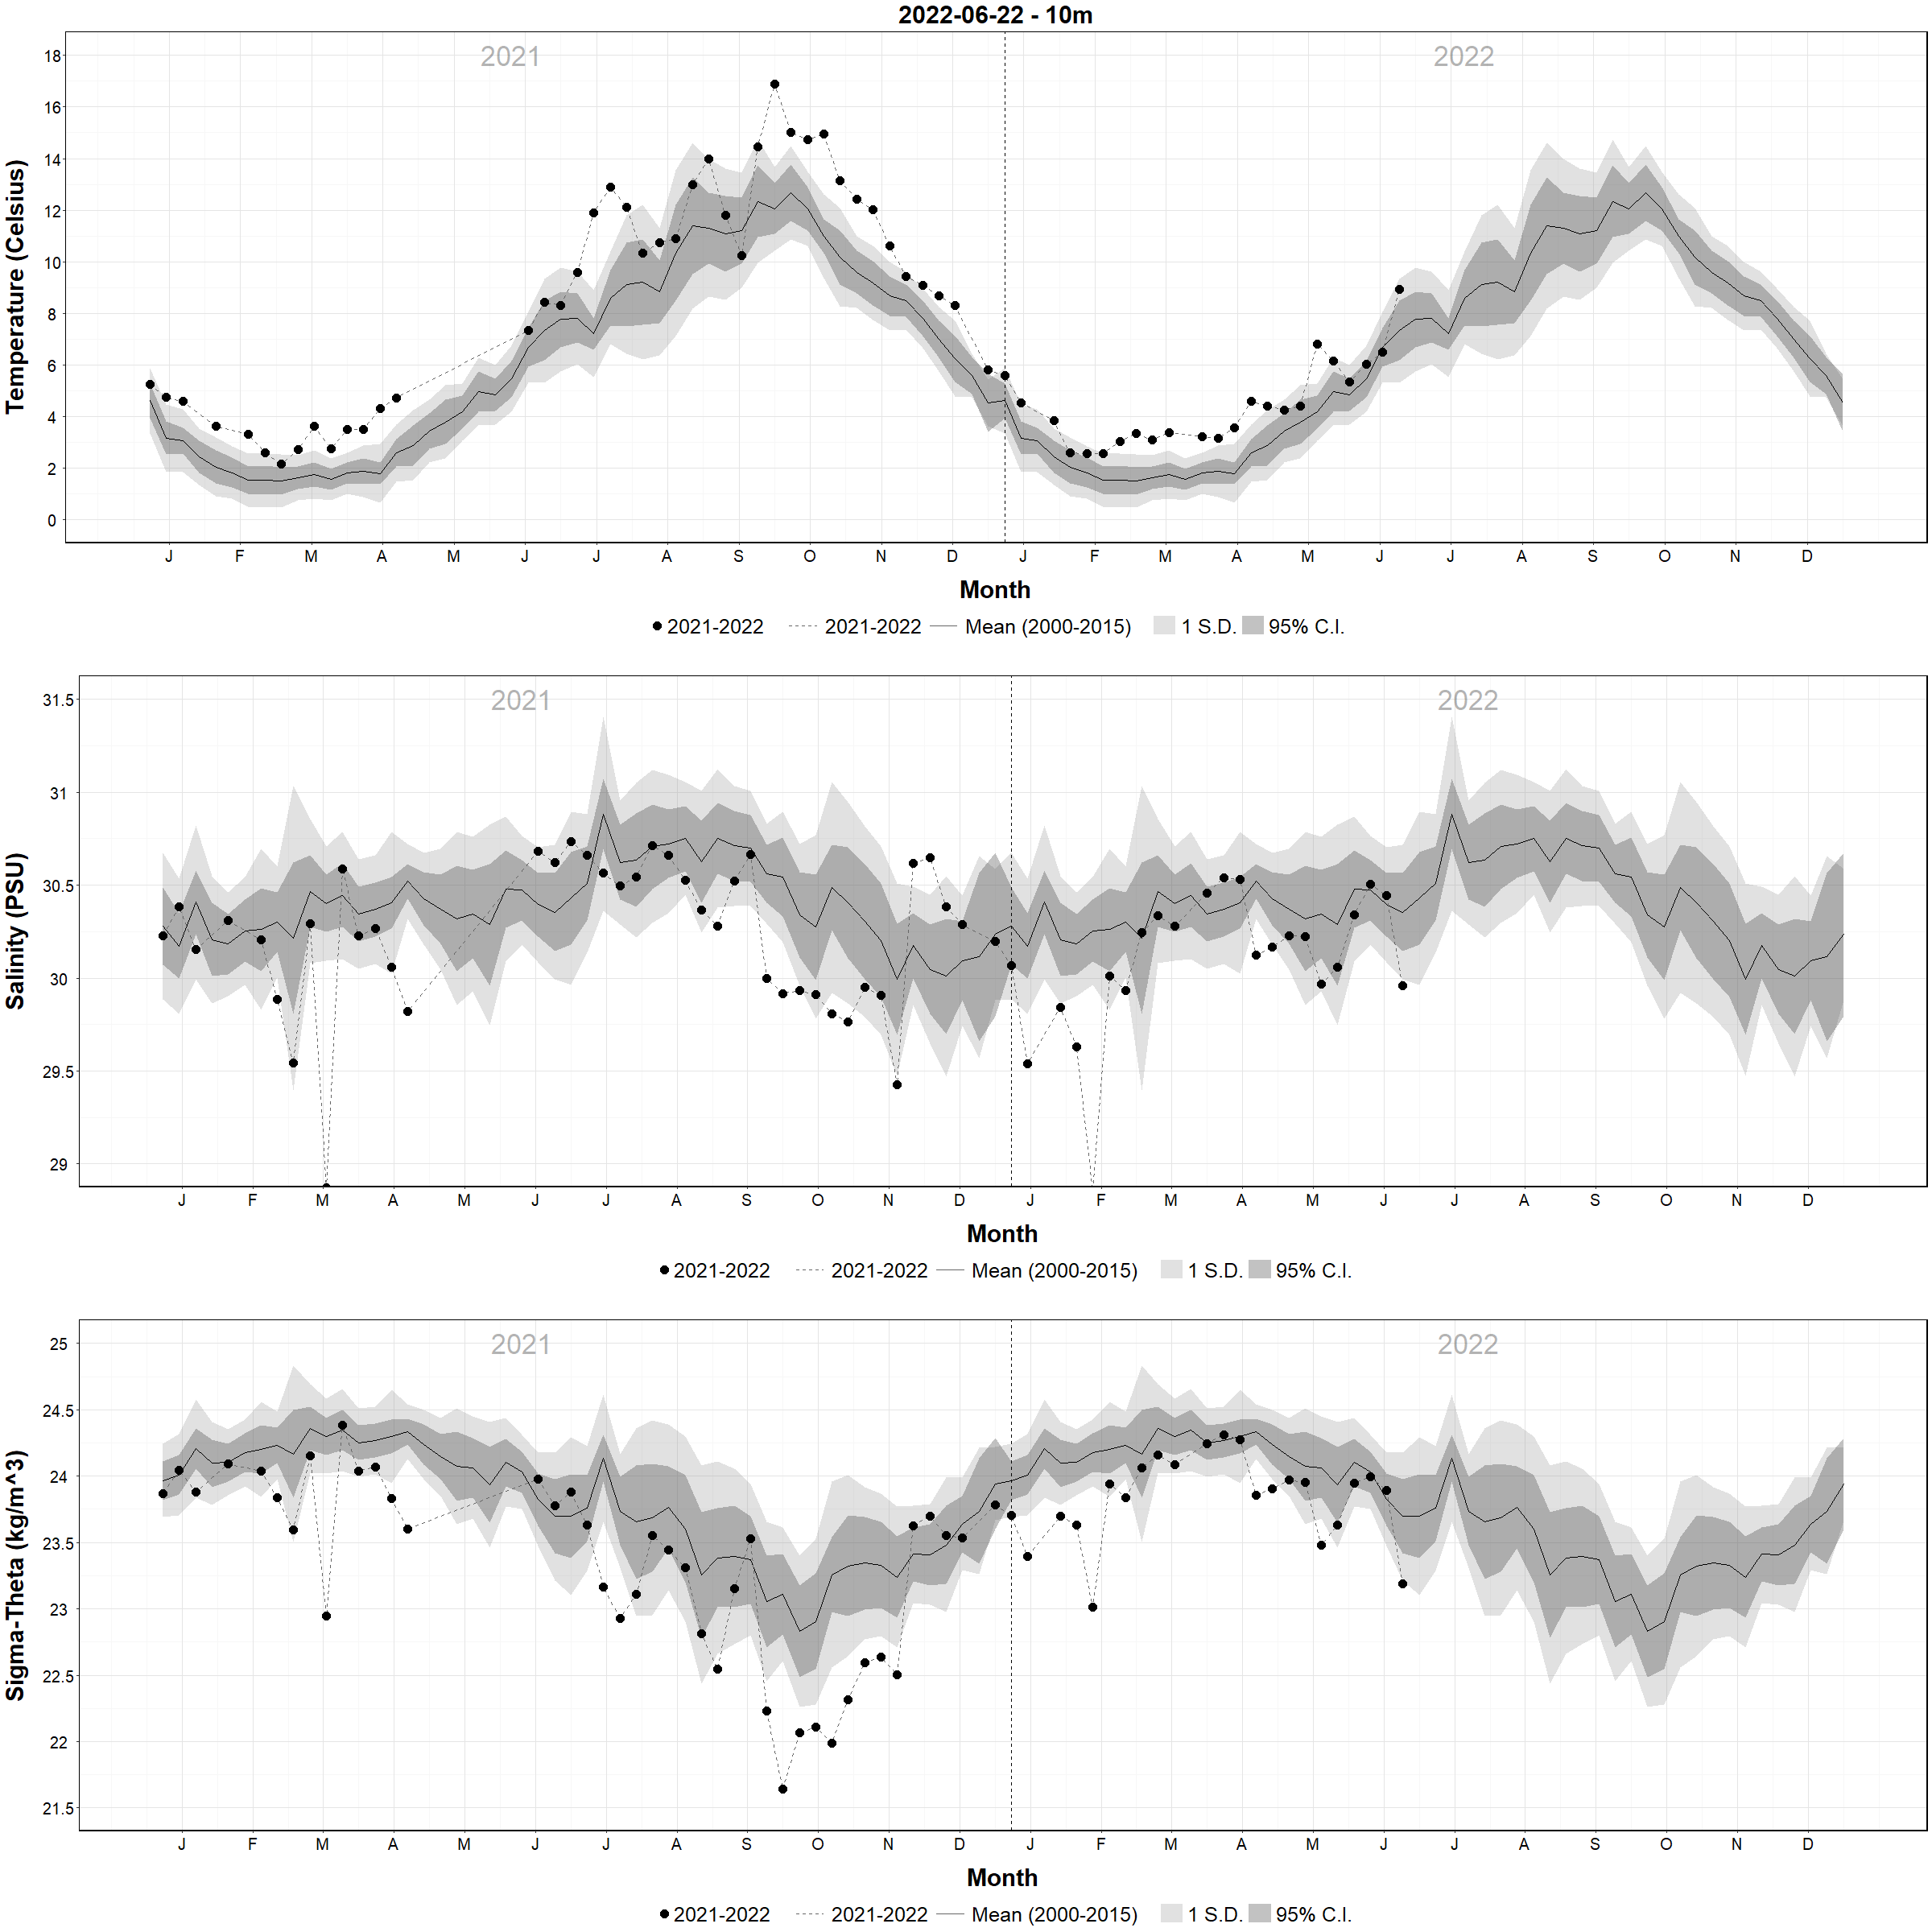 Weekly Temperature and Salinity Plots Versus Climatology - 10m